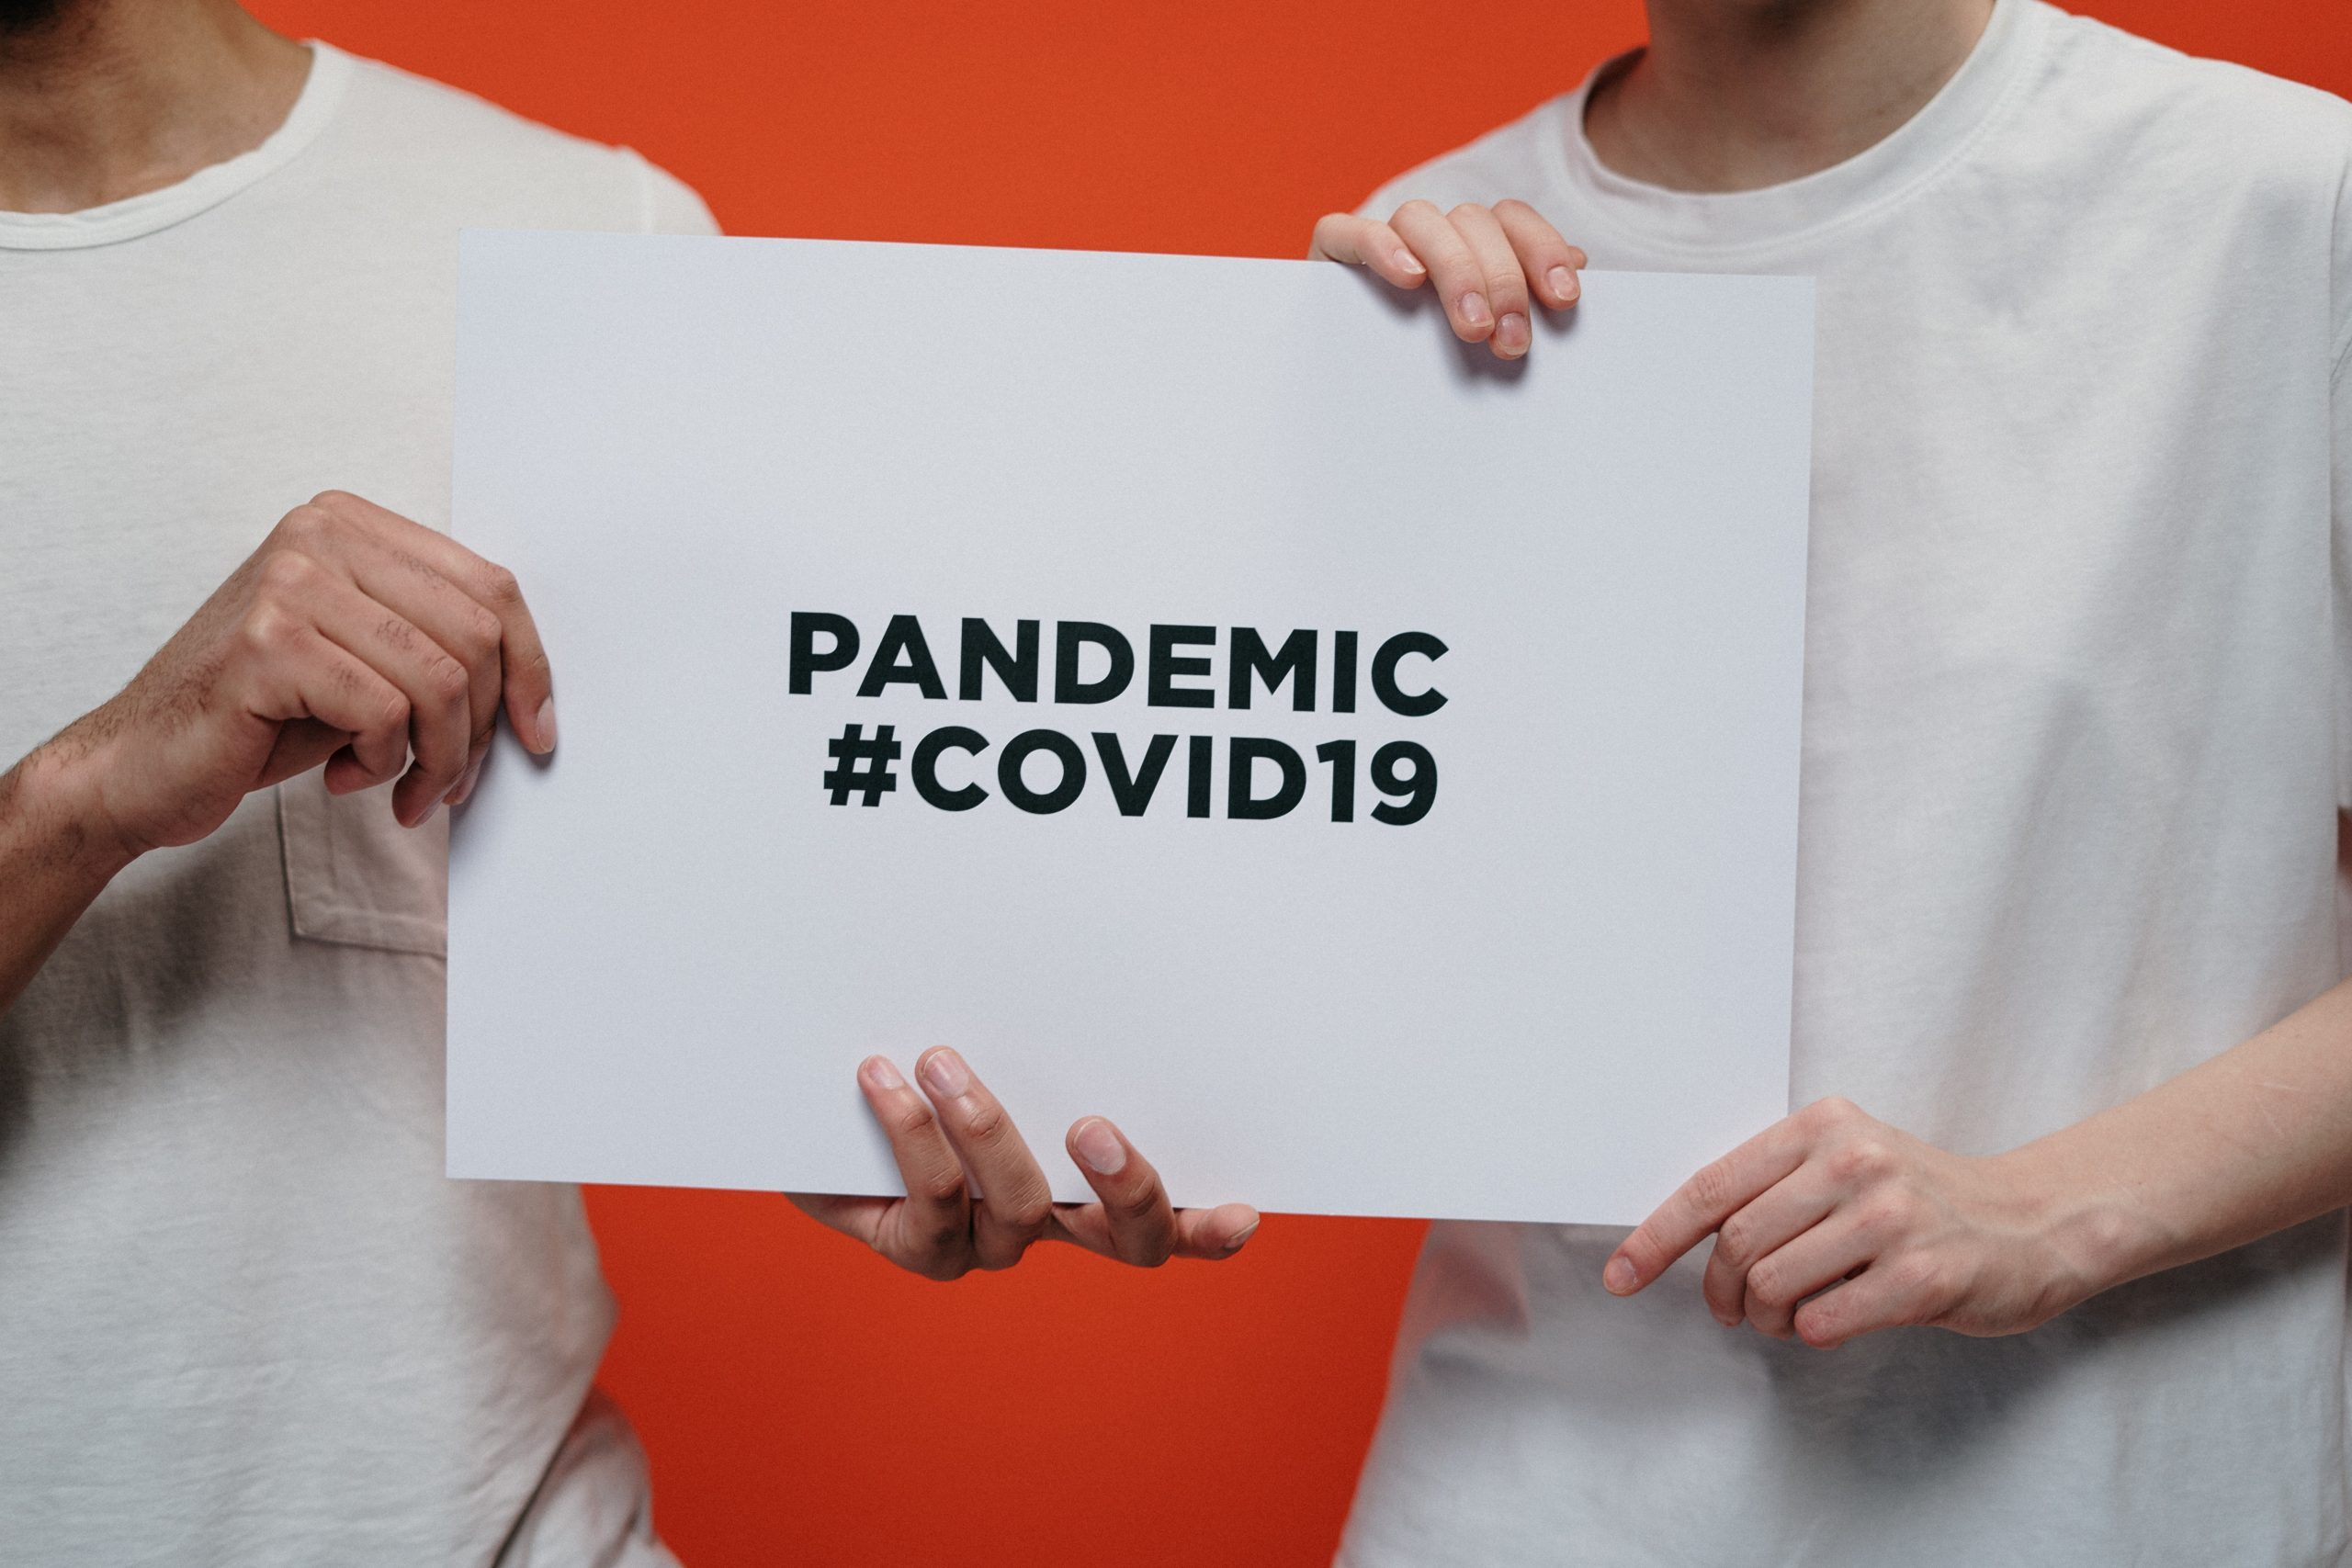 Instagram updates in COVID-19 pandemic